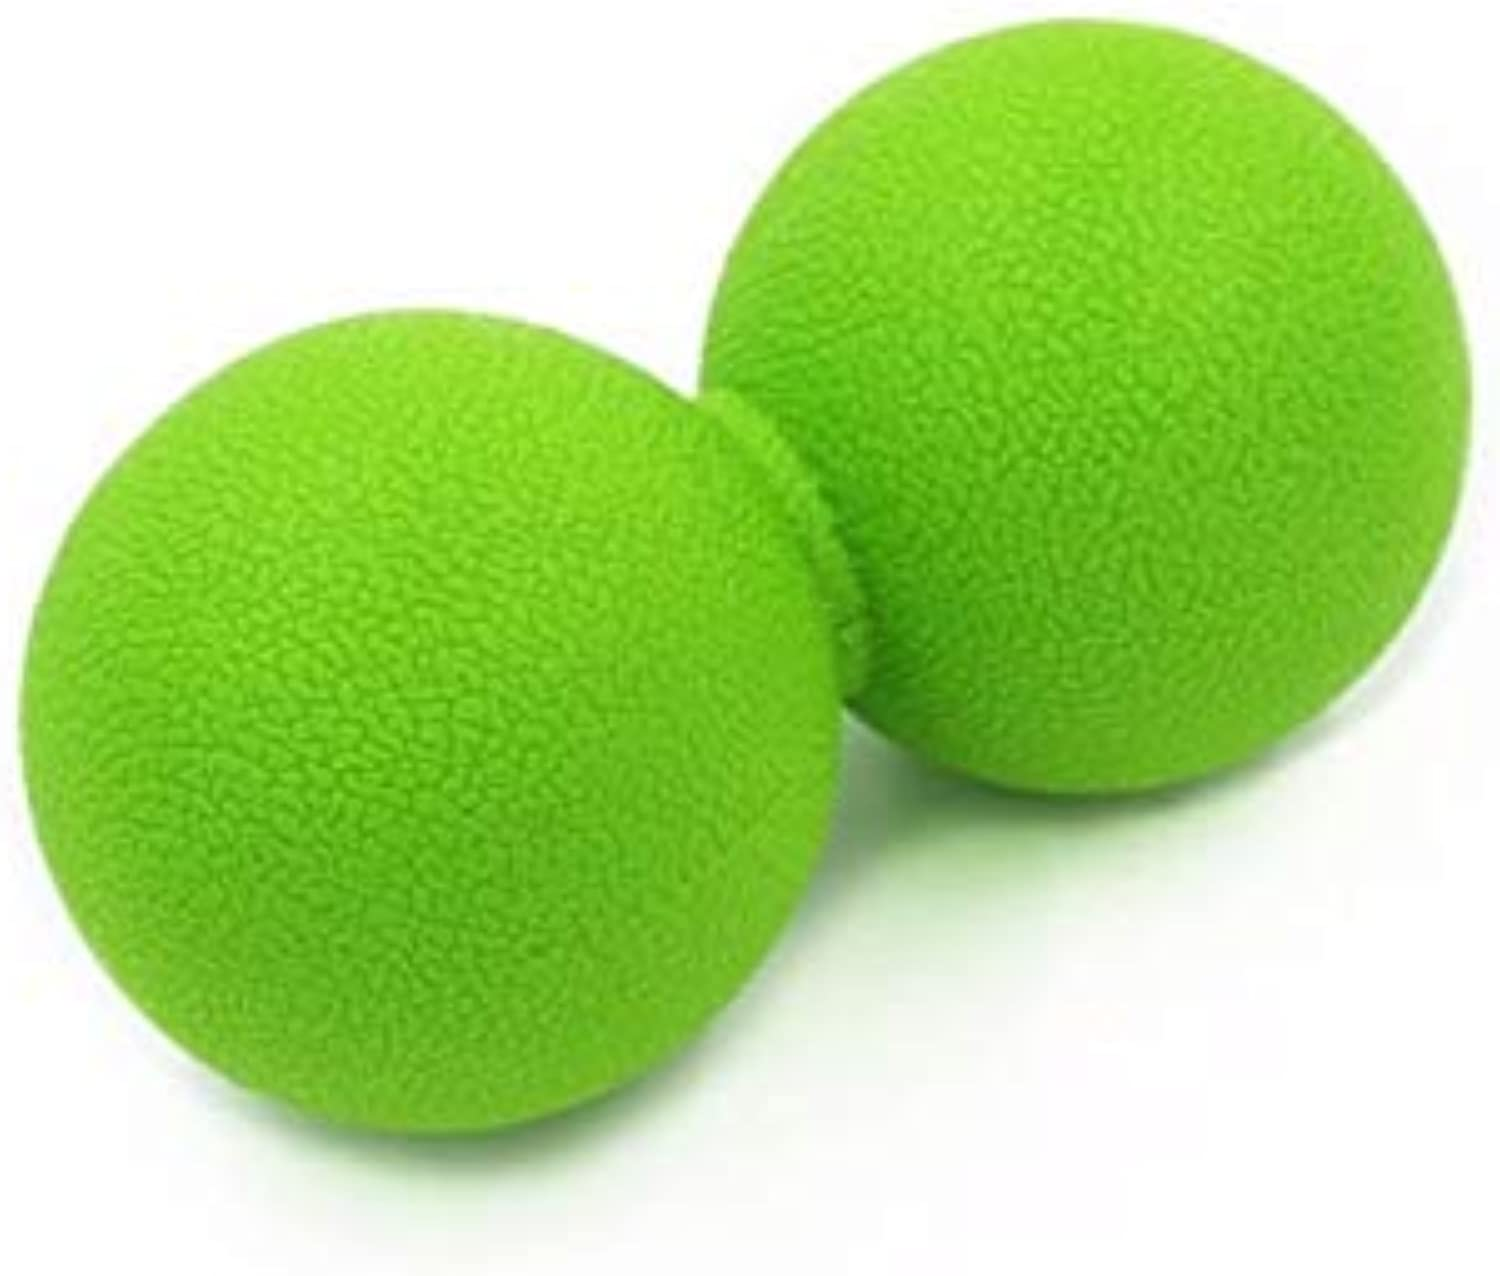 CUSHY Ma Ball Women Lacroe Yoga Mobility Myofacial Trigger Point Releae Body Mucle Relexation Ball Peanut hape  Light Green